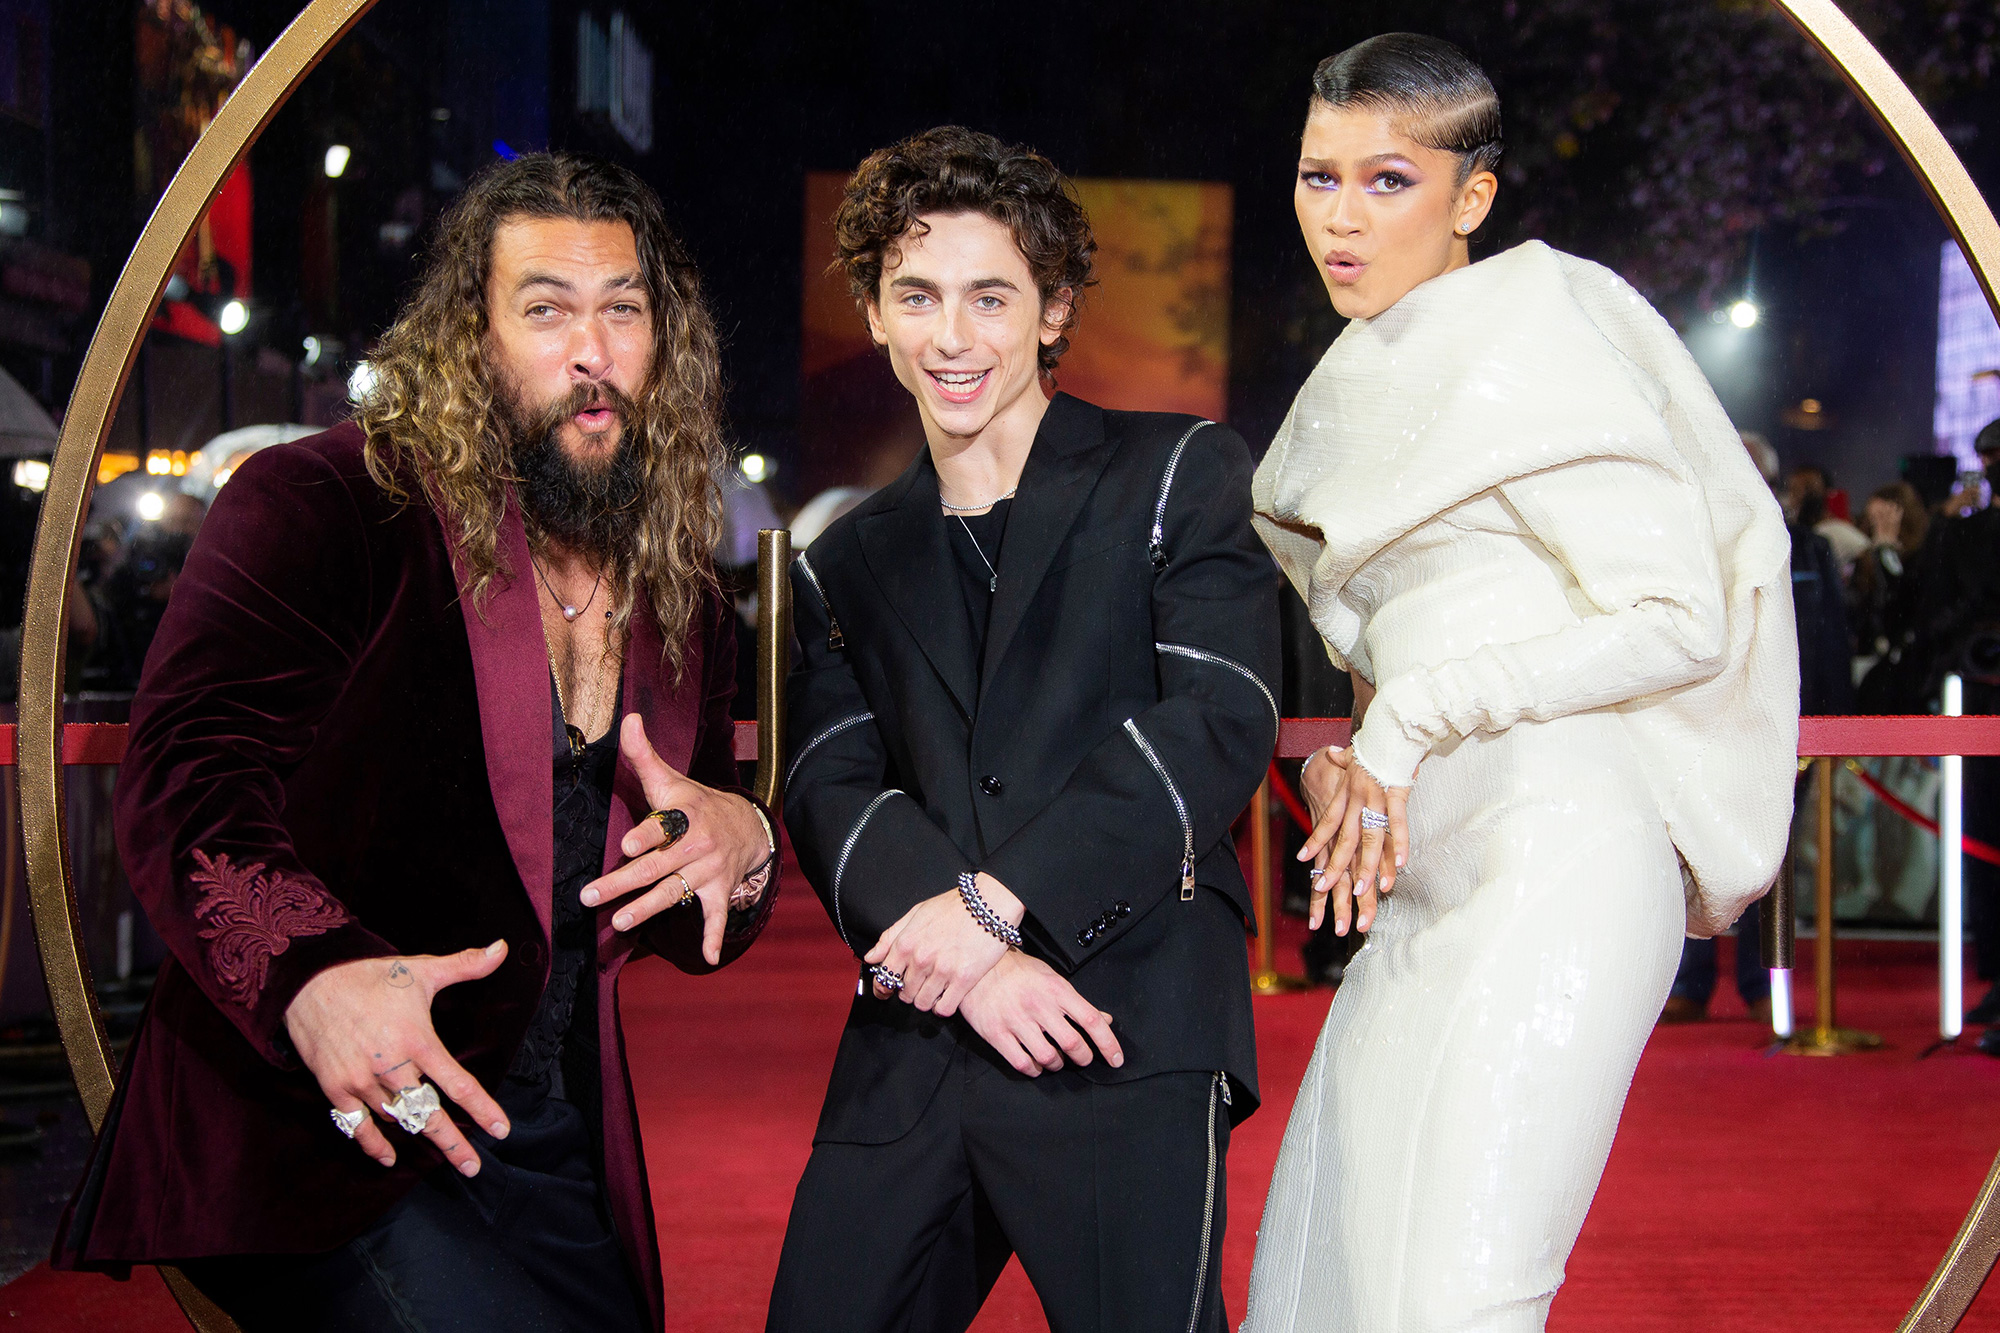 Zendaya, Timothee Chalamet and Jason Momoa, left, pose for photographers upon arrival at the premiere of the film 'Dune' on in London Dune UK Premiere, London, United Kingdom - 18 Oct 2021